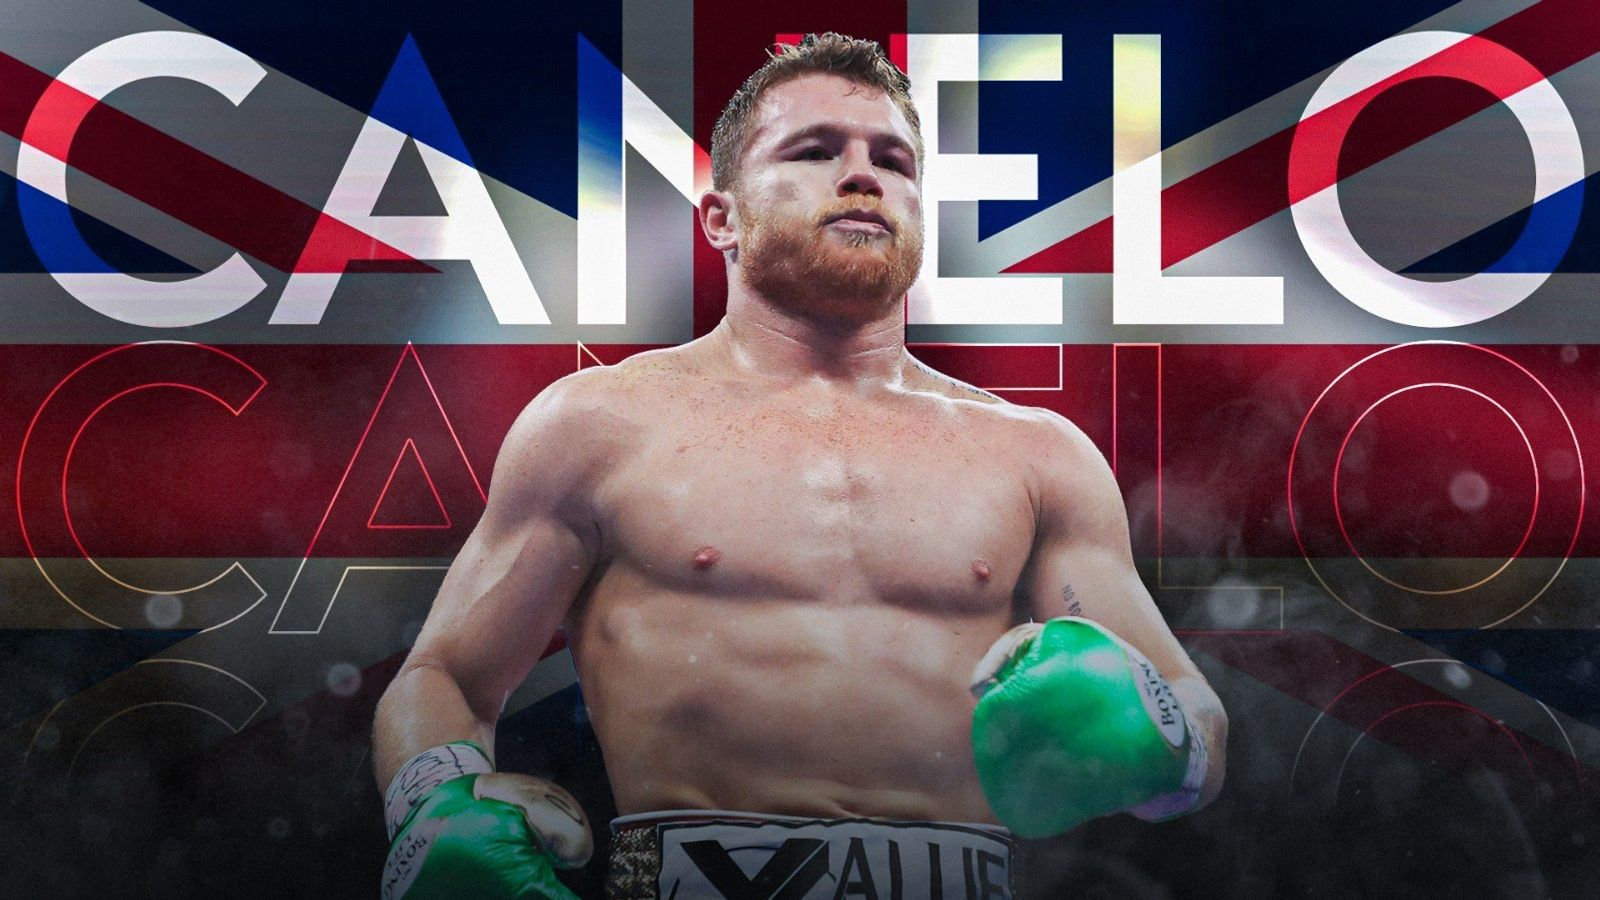 Saul 'Canelo' Alvarez 'wants to fight abroad' and 'has